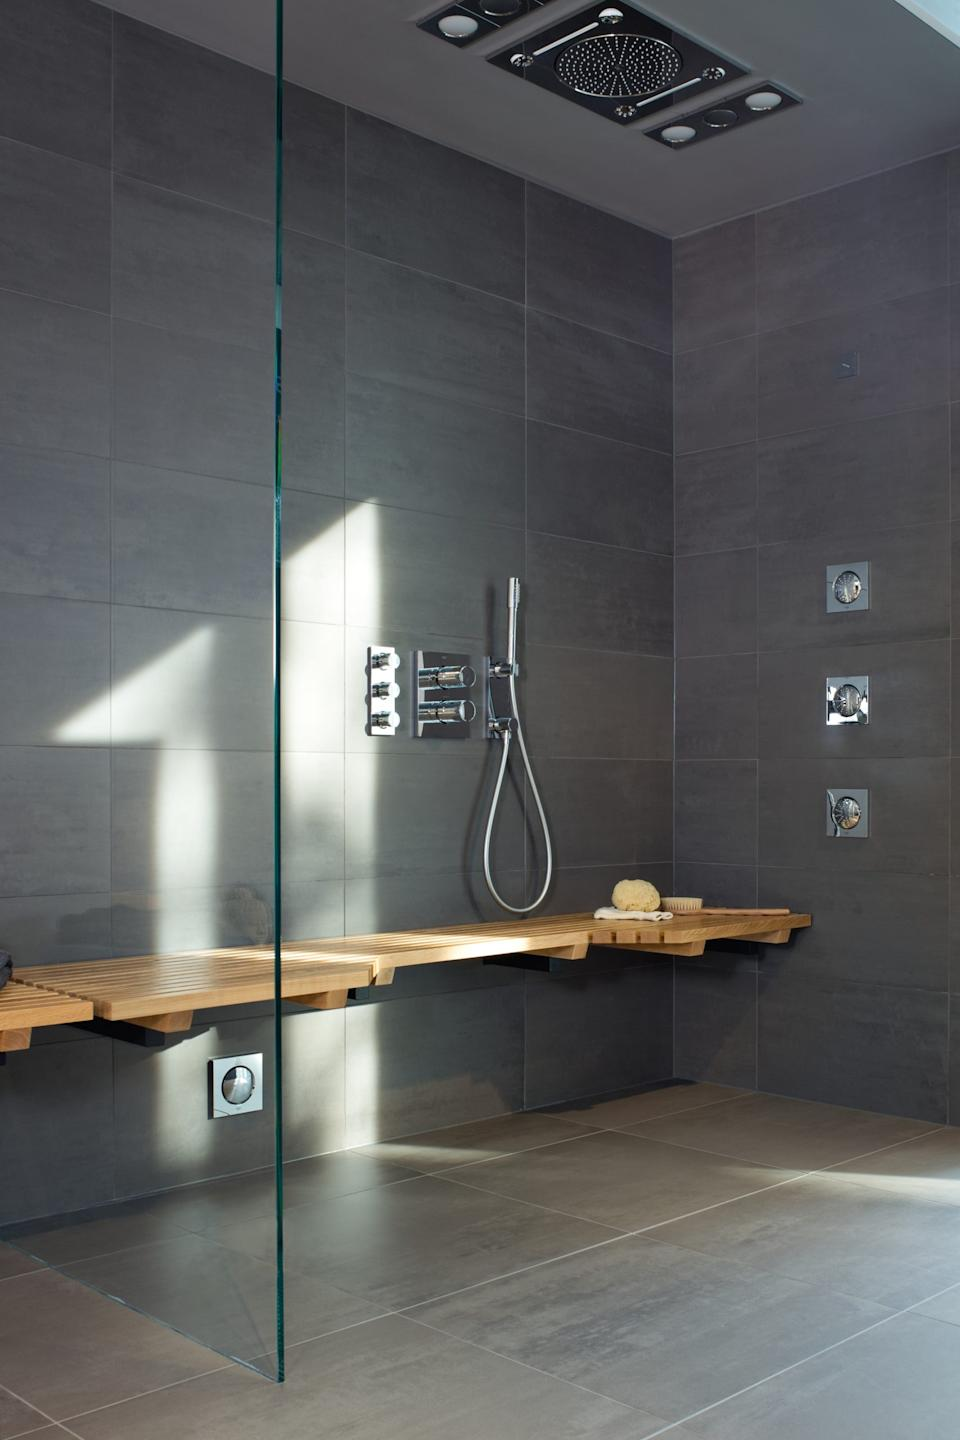 Wet room ideas. GROHE